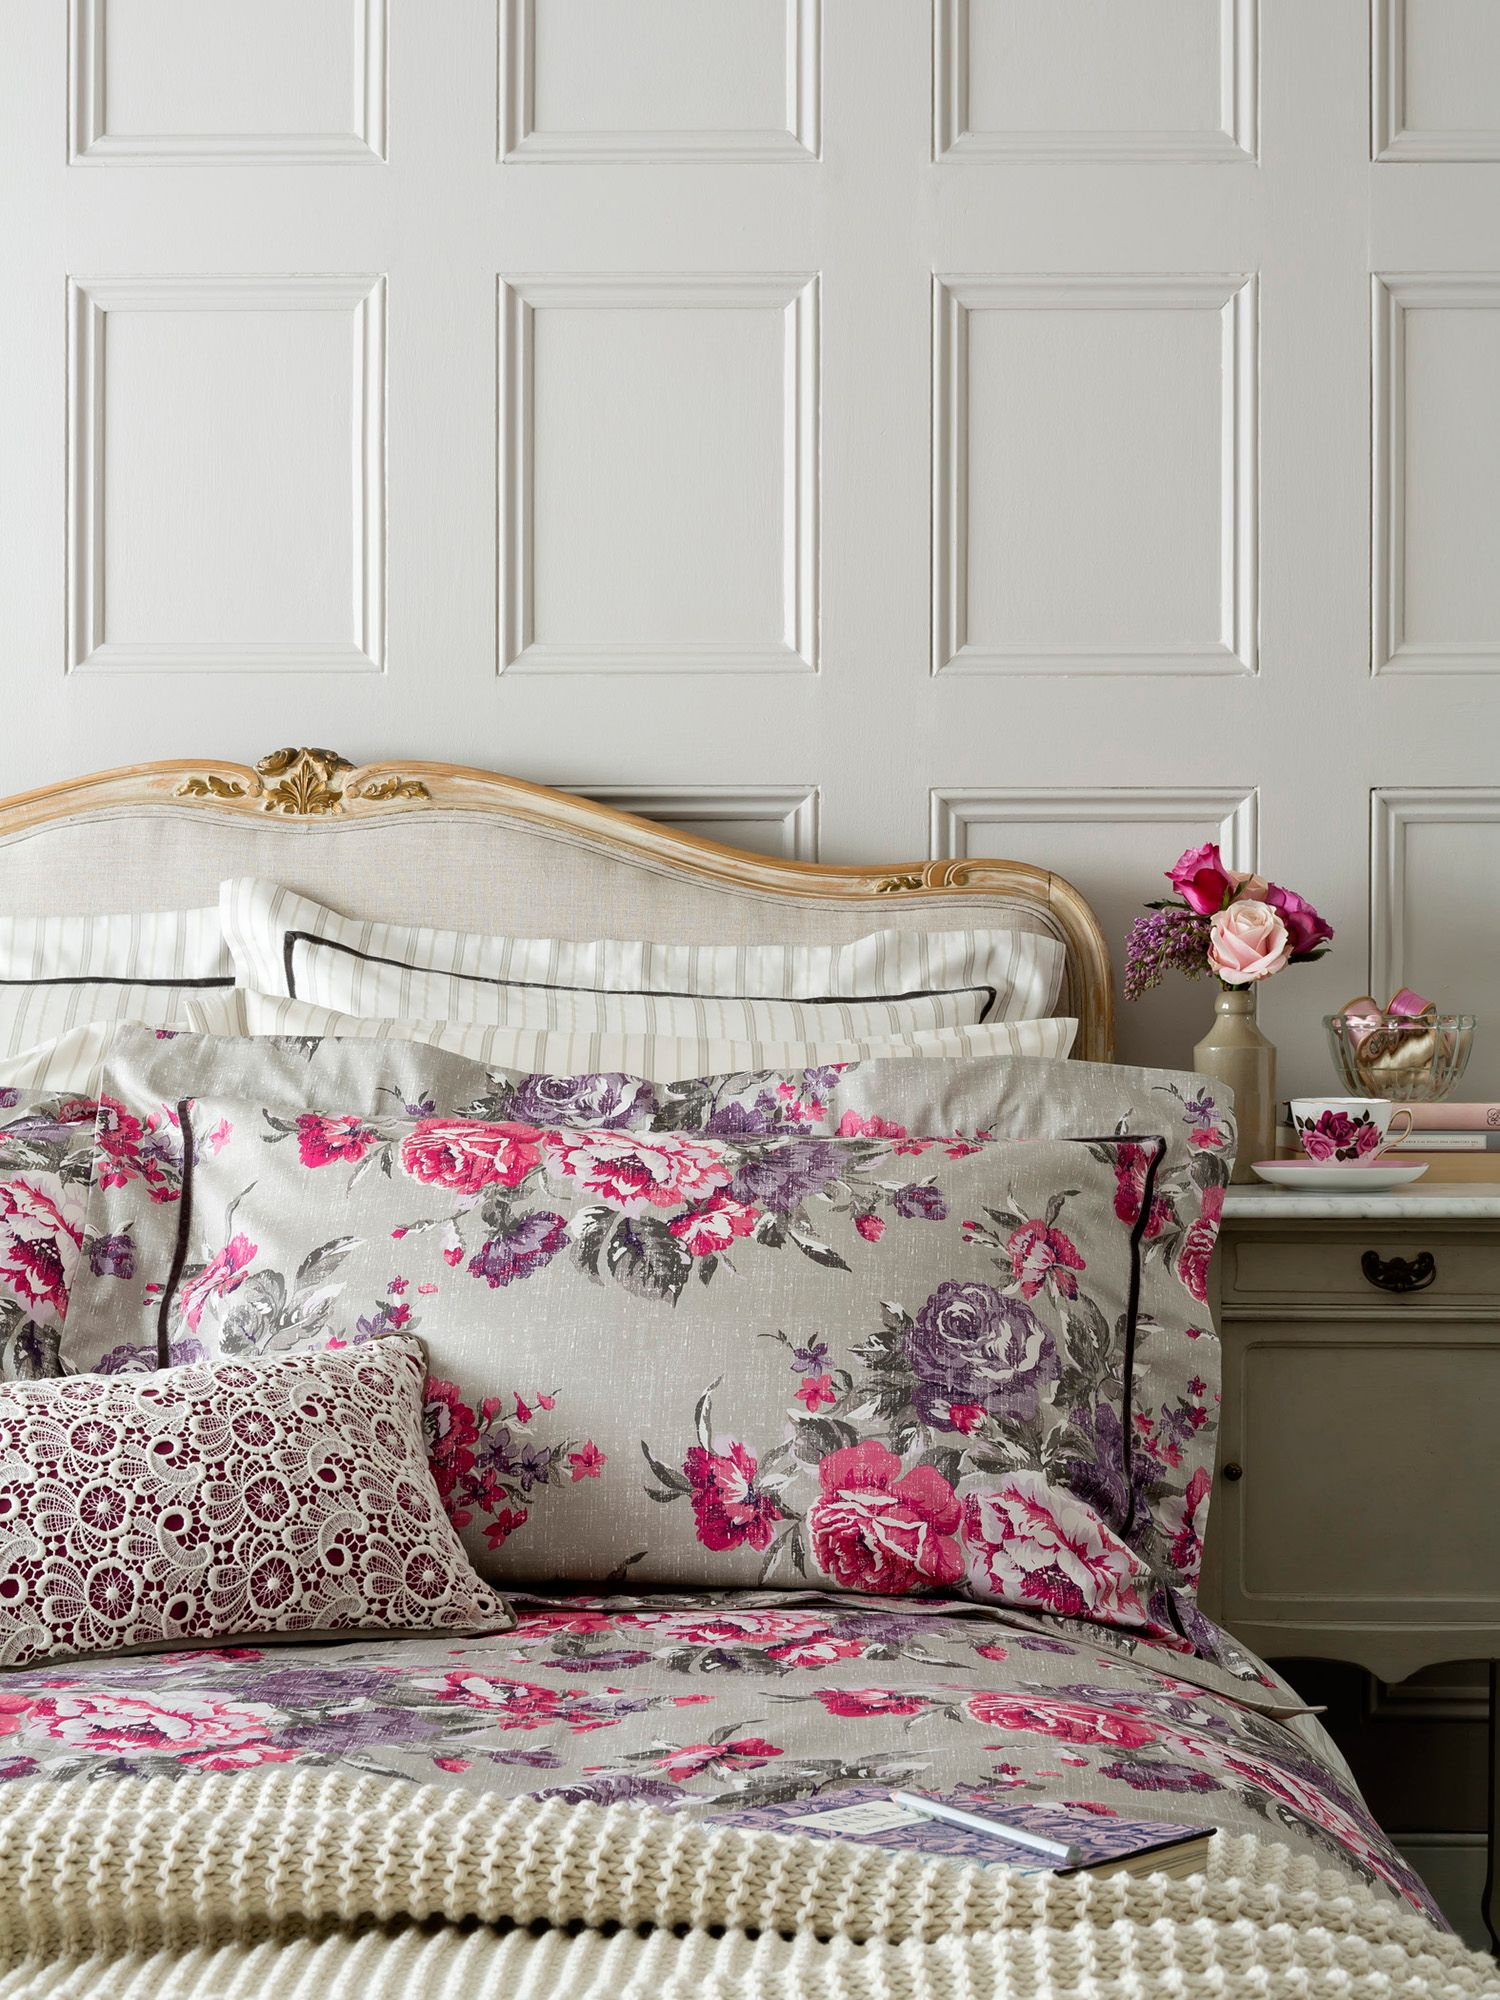 Bloomsbury bed linen in plum